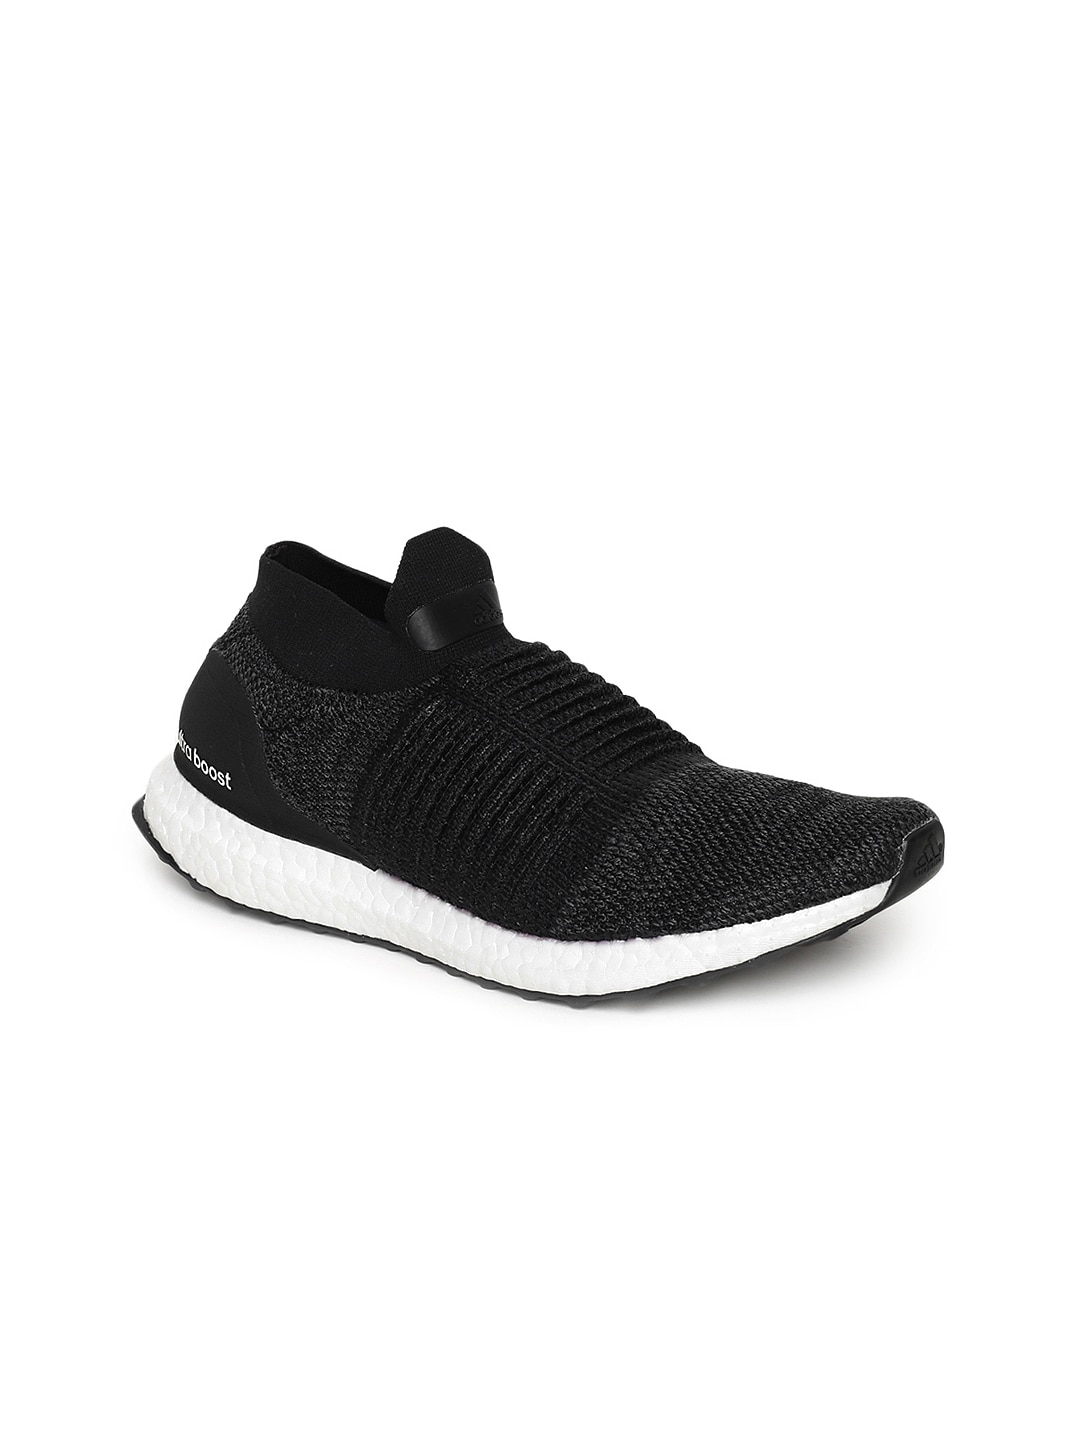 e40432271 Adidas Ultraboost - Buy Adidas Ultraboost online in India